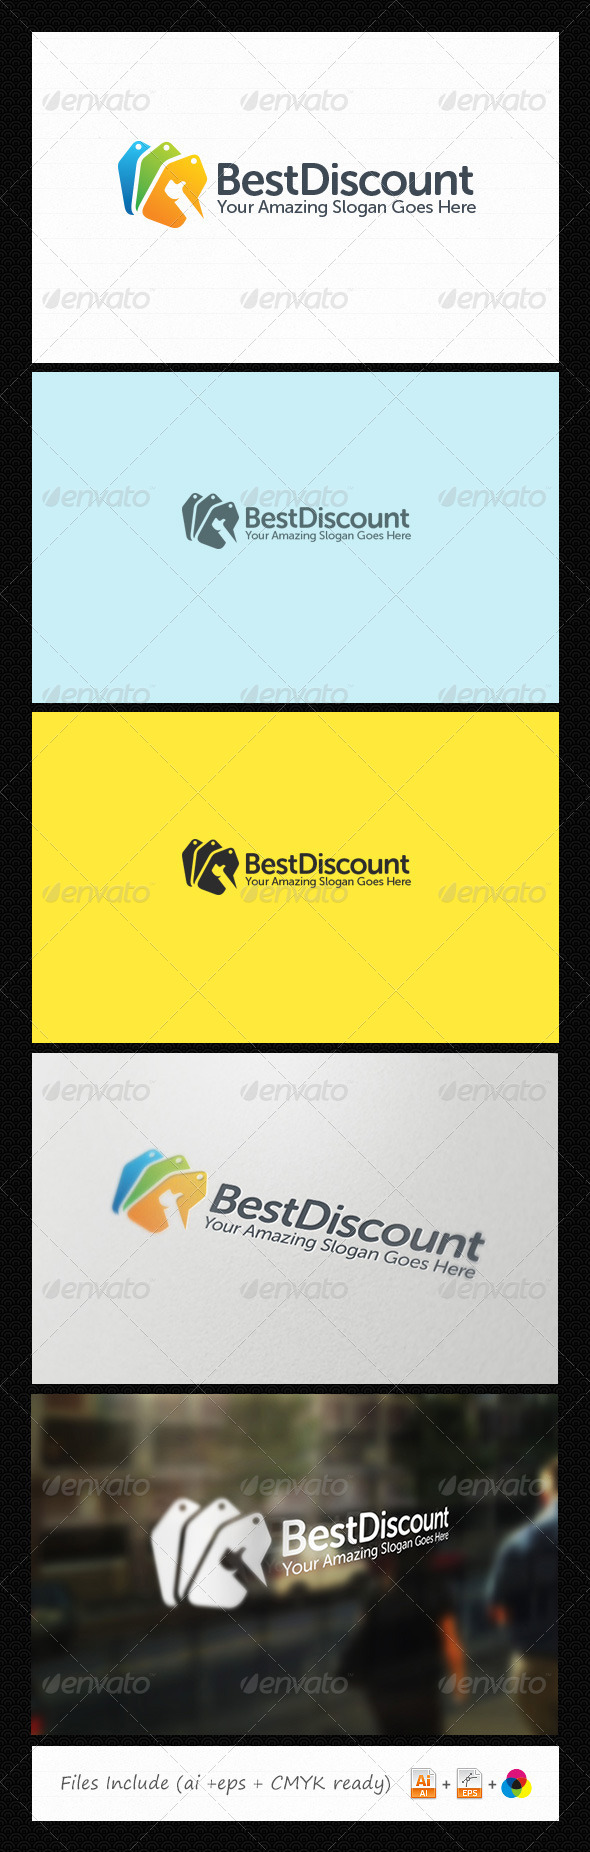 GraphicRiver Best Discount Logo 6054119